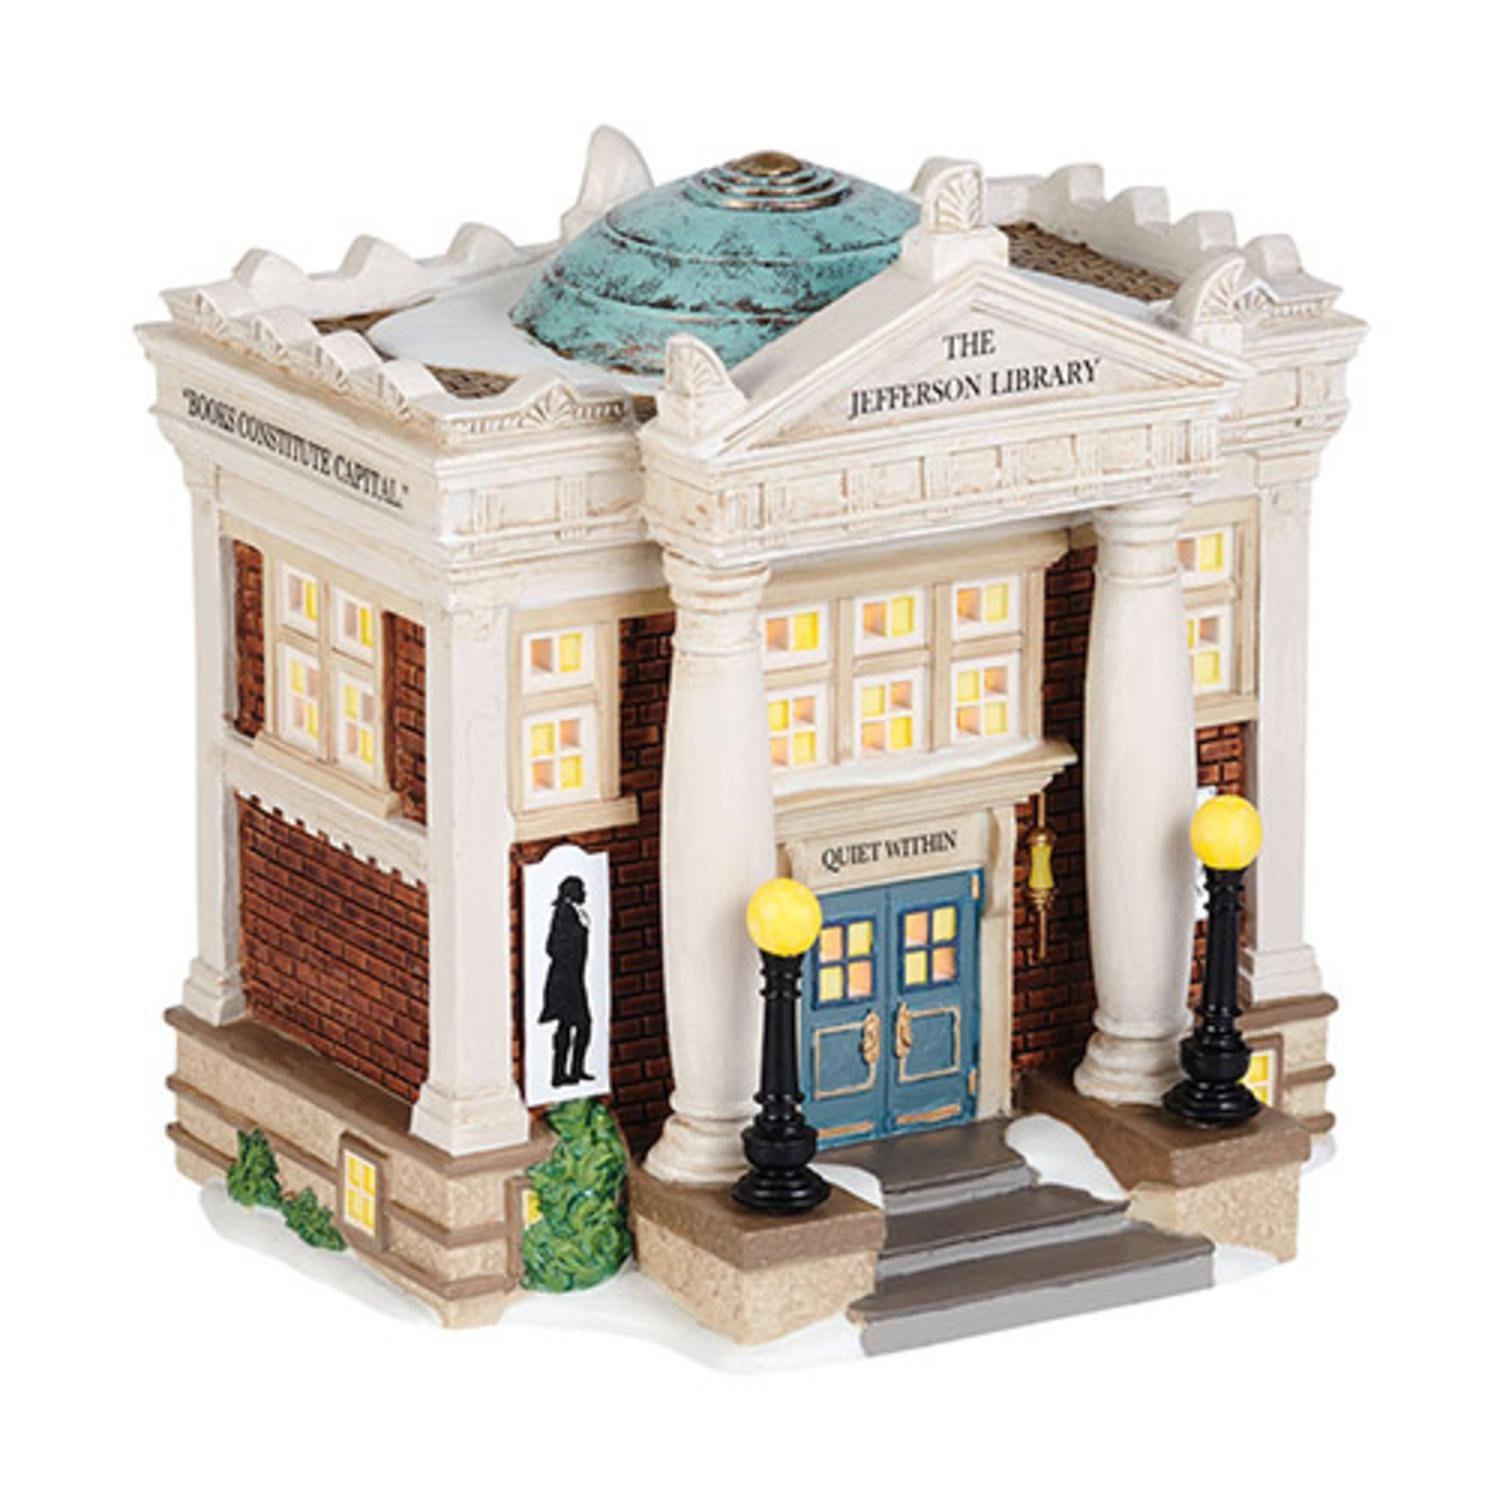 Department 56 New England Village ''The Jefferson Library'' Porcelain Lighted Building #4036529